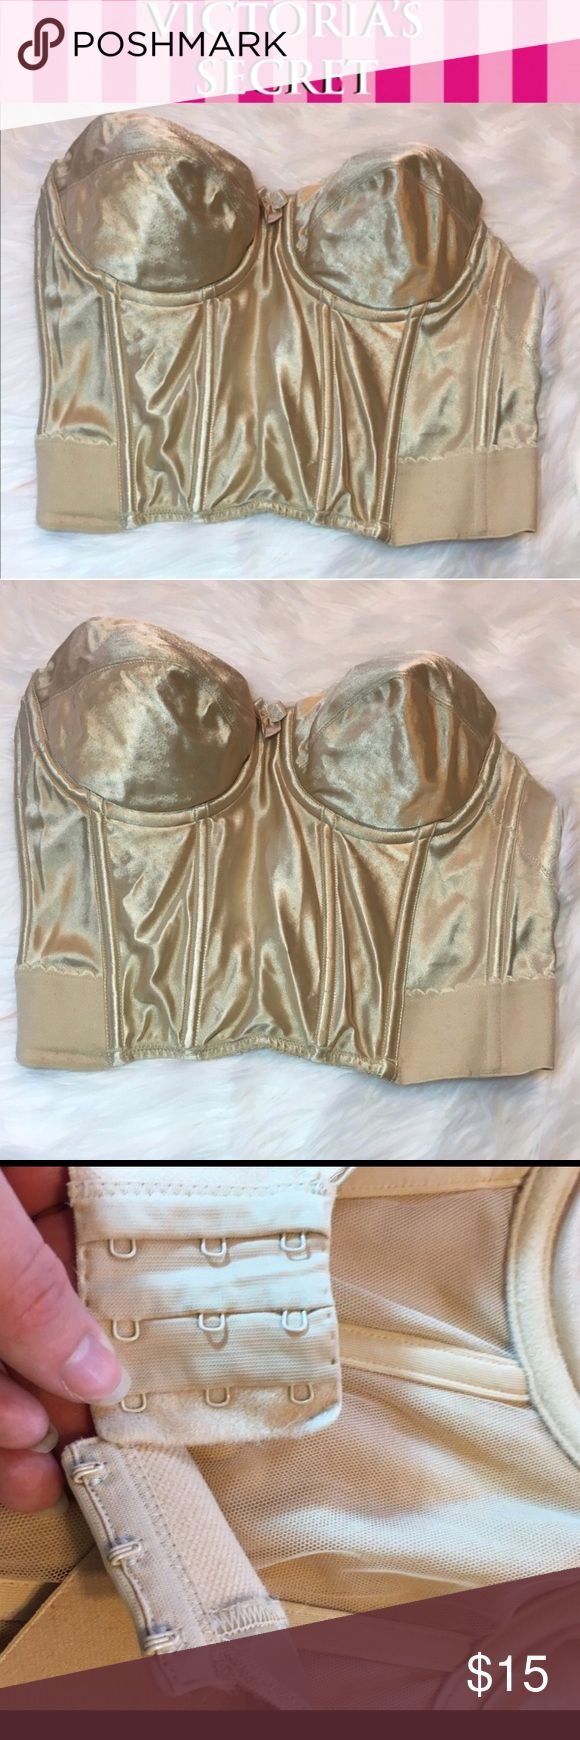 Victoria's Secret Tan Strapless Shapewear Bra 34B Minor wear -add your items to a bundle so I can make you a discount offer!  -some items prices are firm unless bundled  -no holds  -no trades  -same day or next day shipping Victoria's Secret Intimates & Sleepwear Shapewear